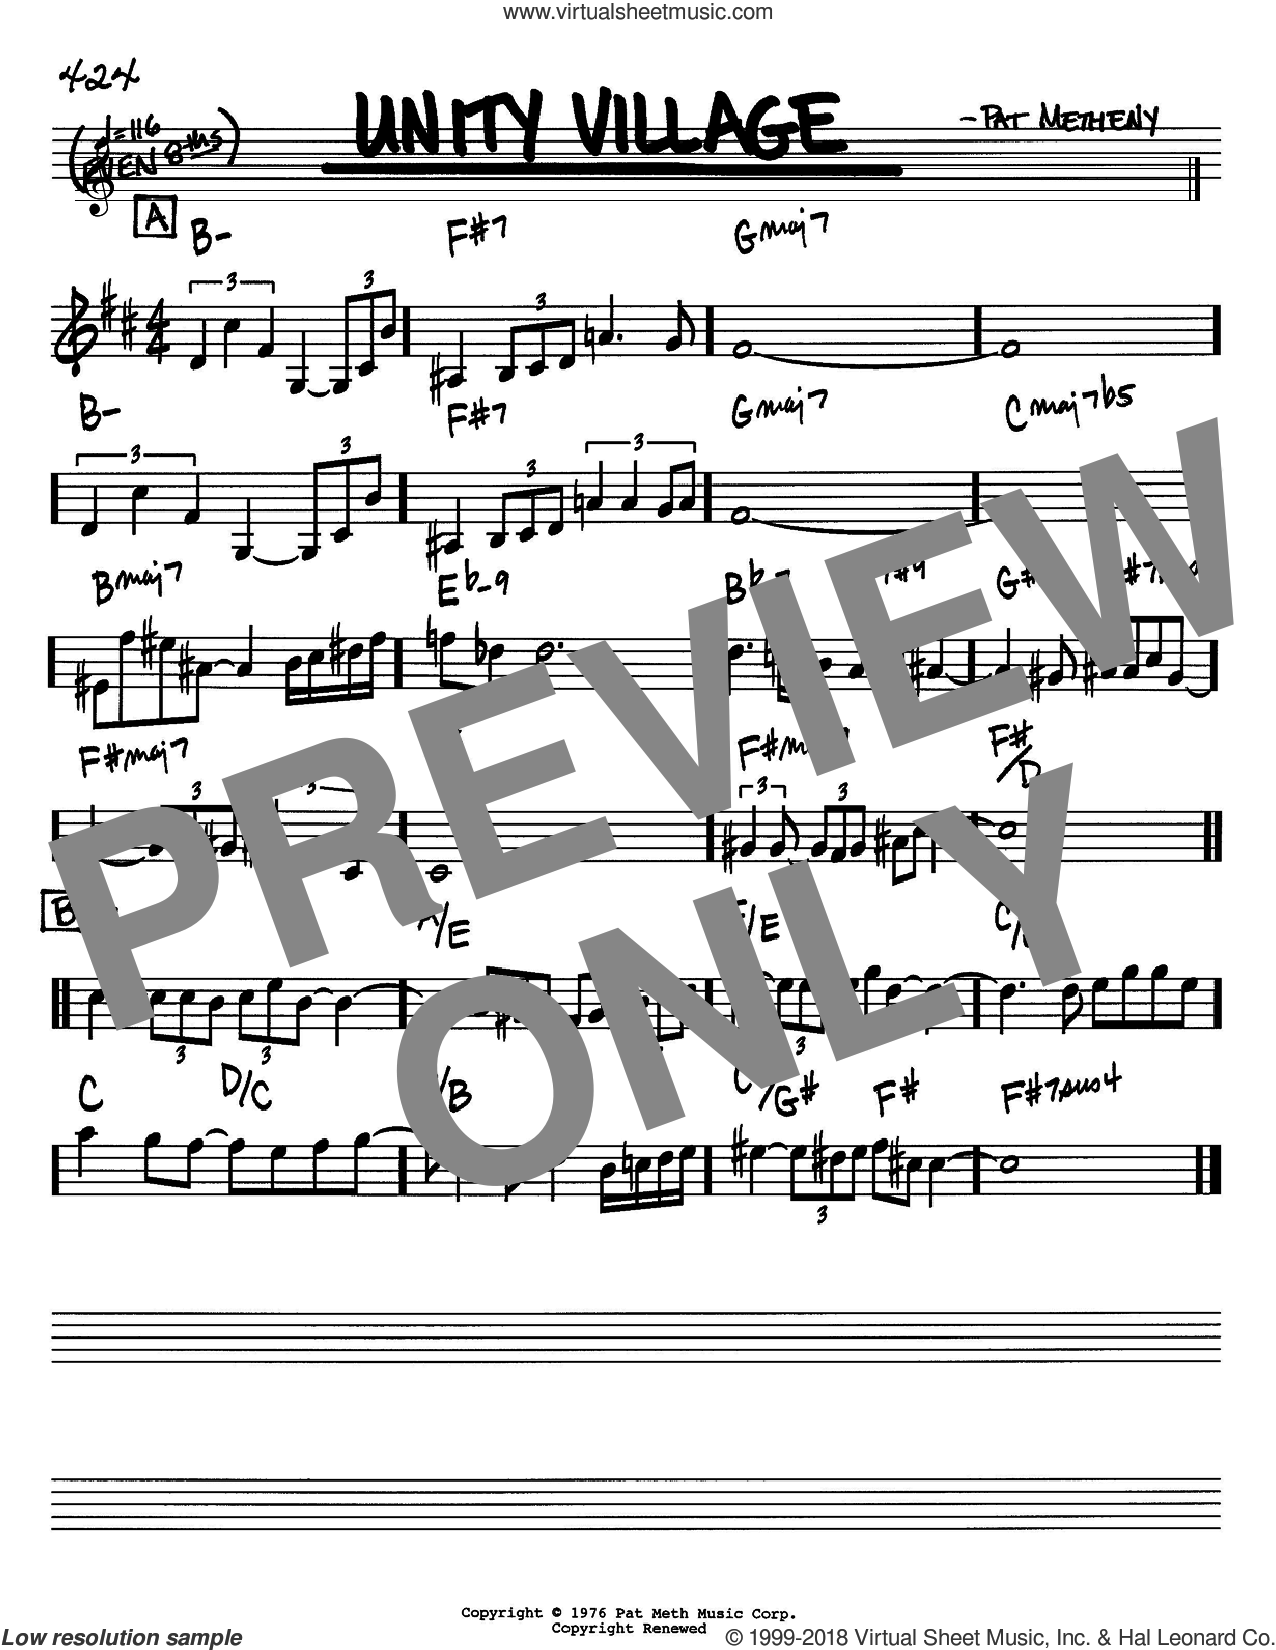 Unity Village sheet music for voice and other instruments (in Bb) by Pat Metheny, intermediate